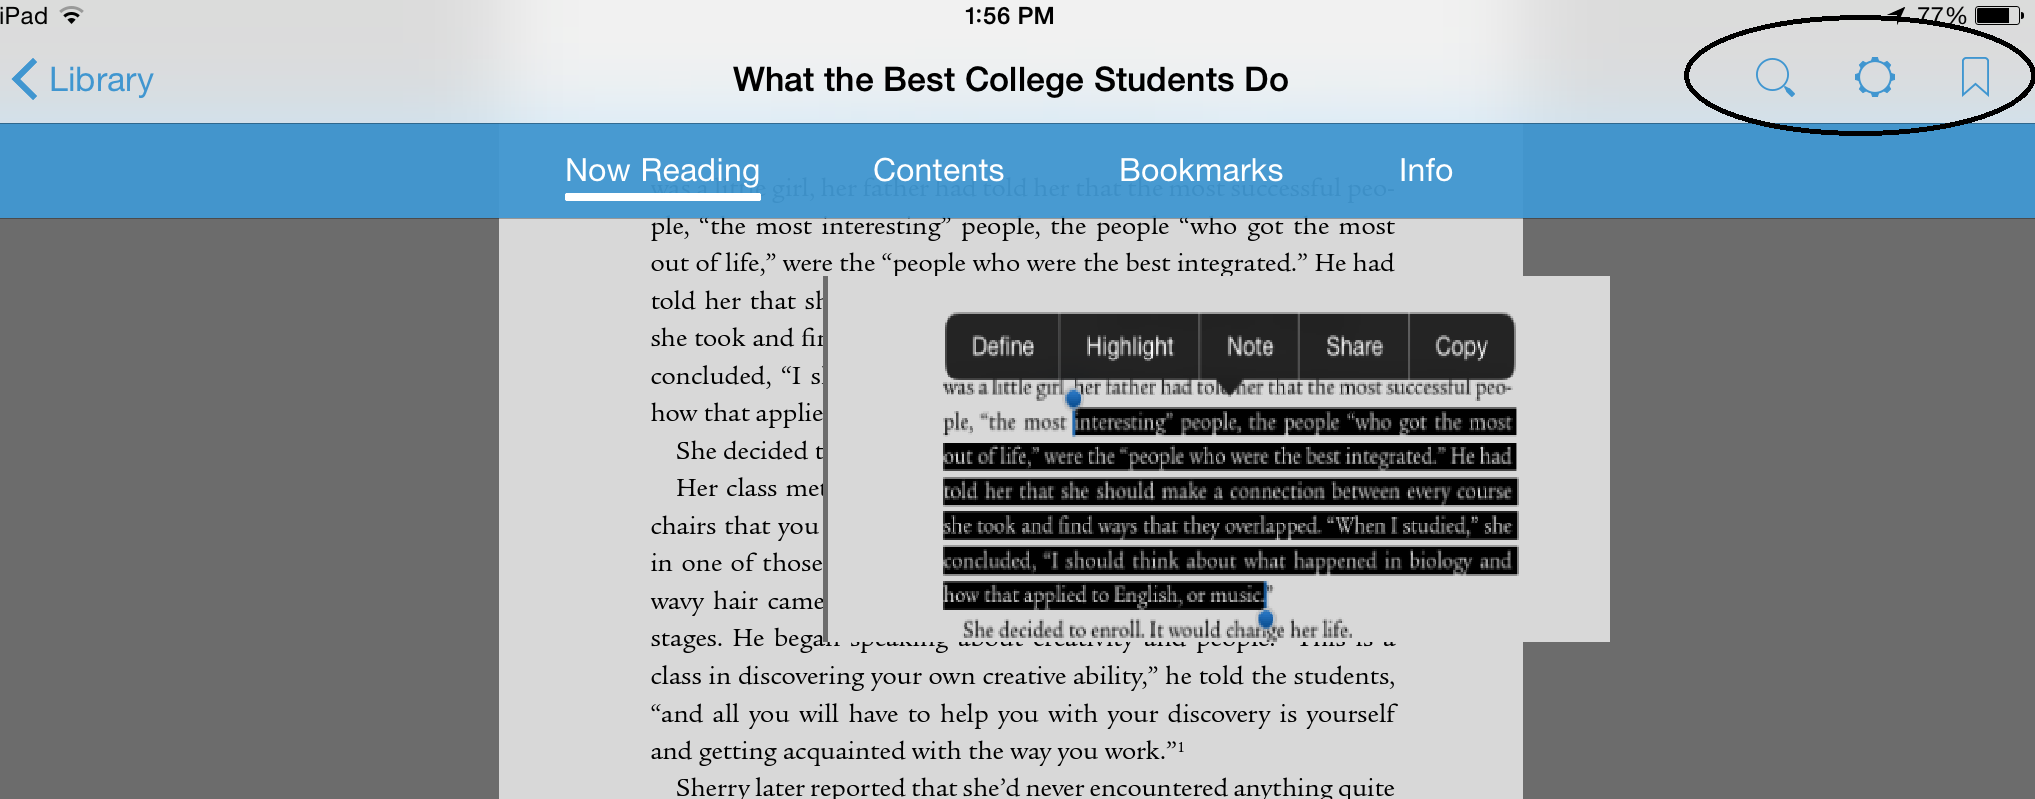 image of ebook in bluefire reder for iOS